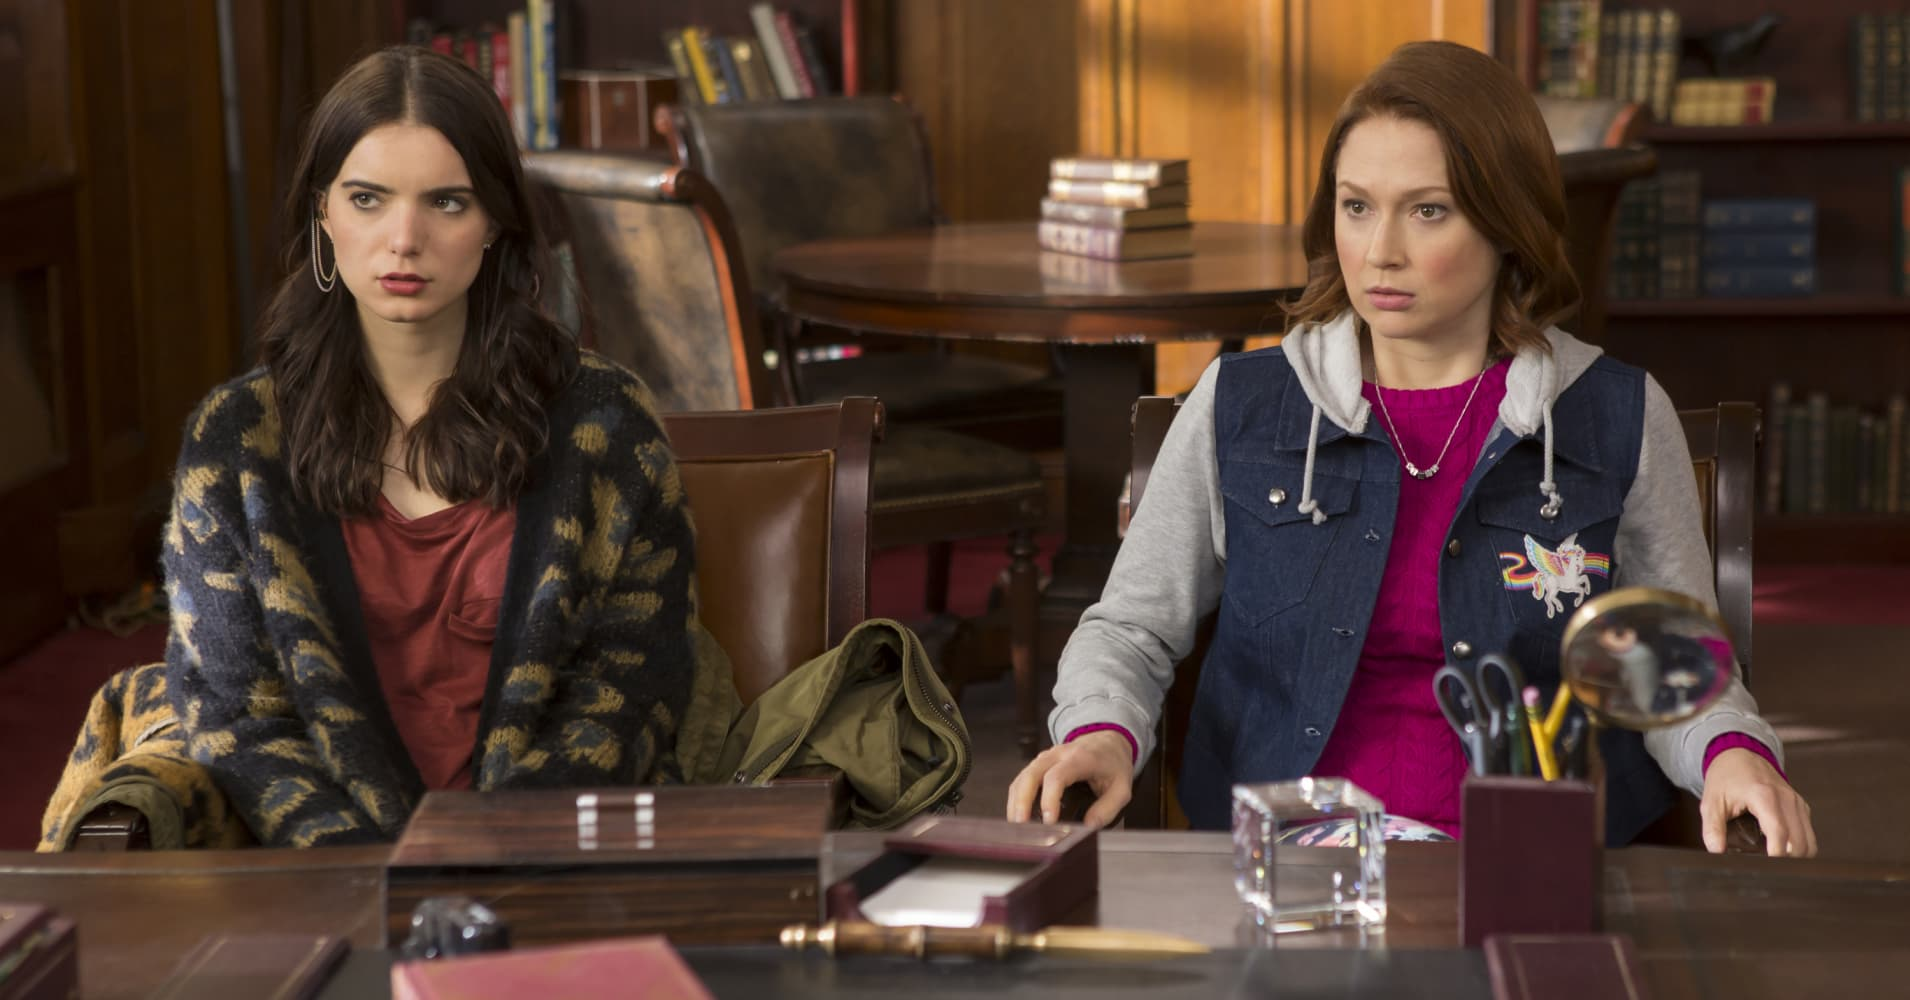 Dylan Gelula as Xanthippe Lannister Voorhees (left) and Ellie Kemper as Kimmy Schmidt from Season 3 of the Unbreakable Kimmy Schmidt